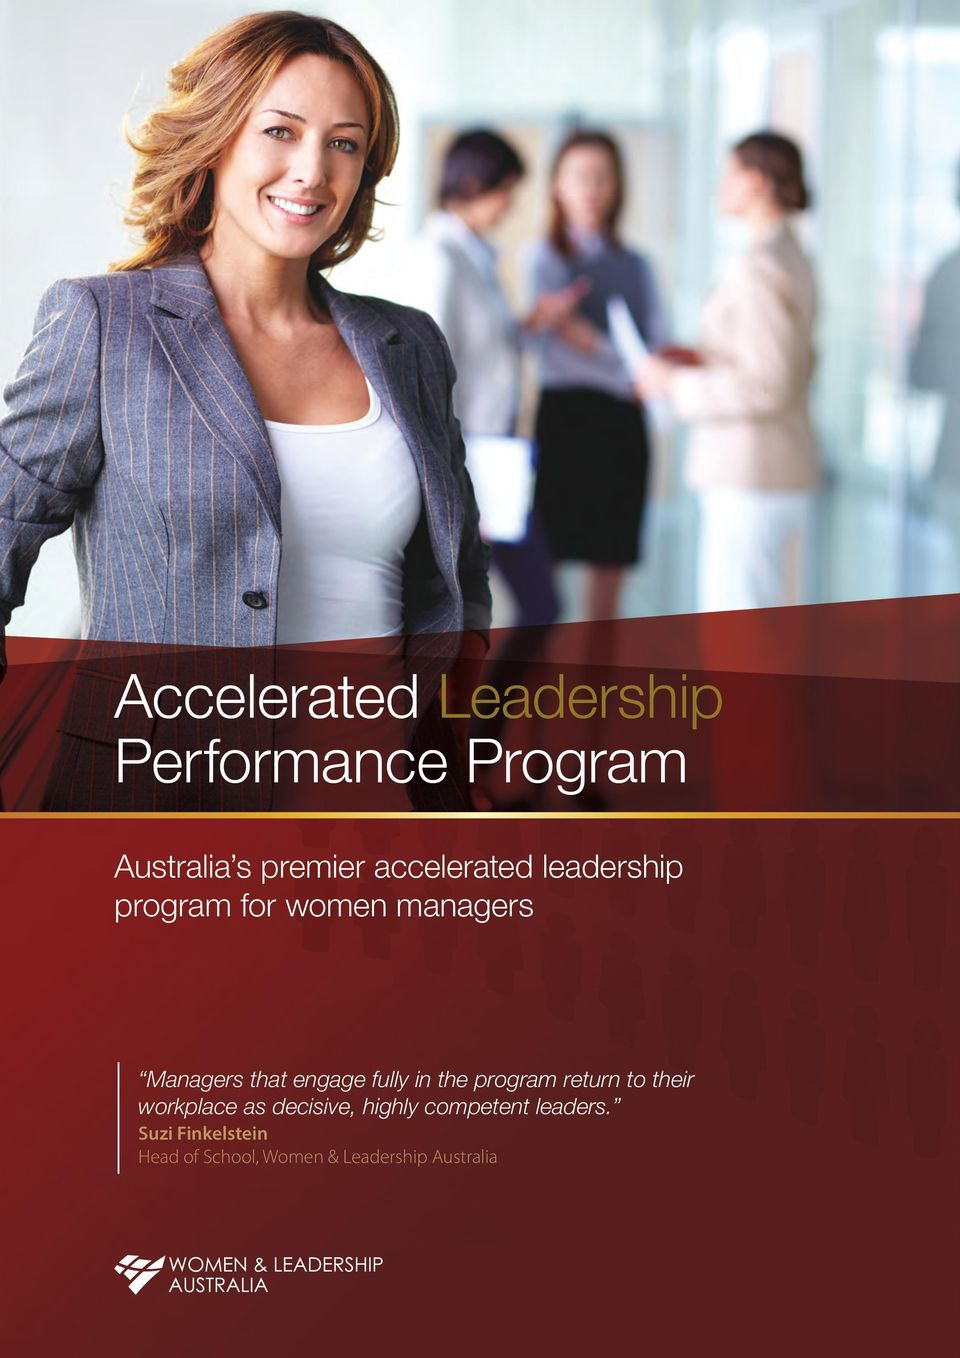 engage flly in the program retrn to their workplace as decisive,